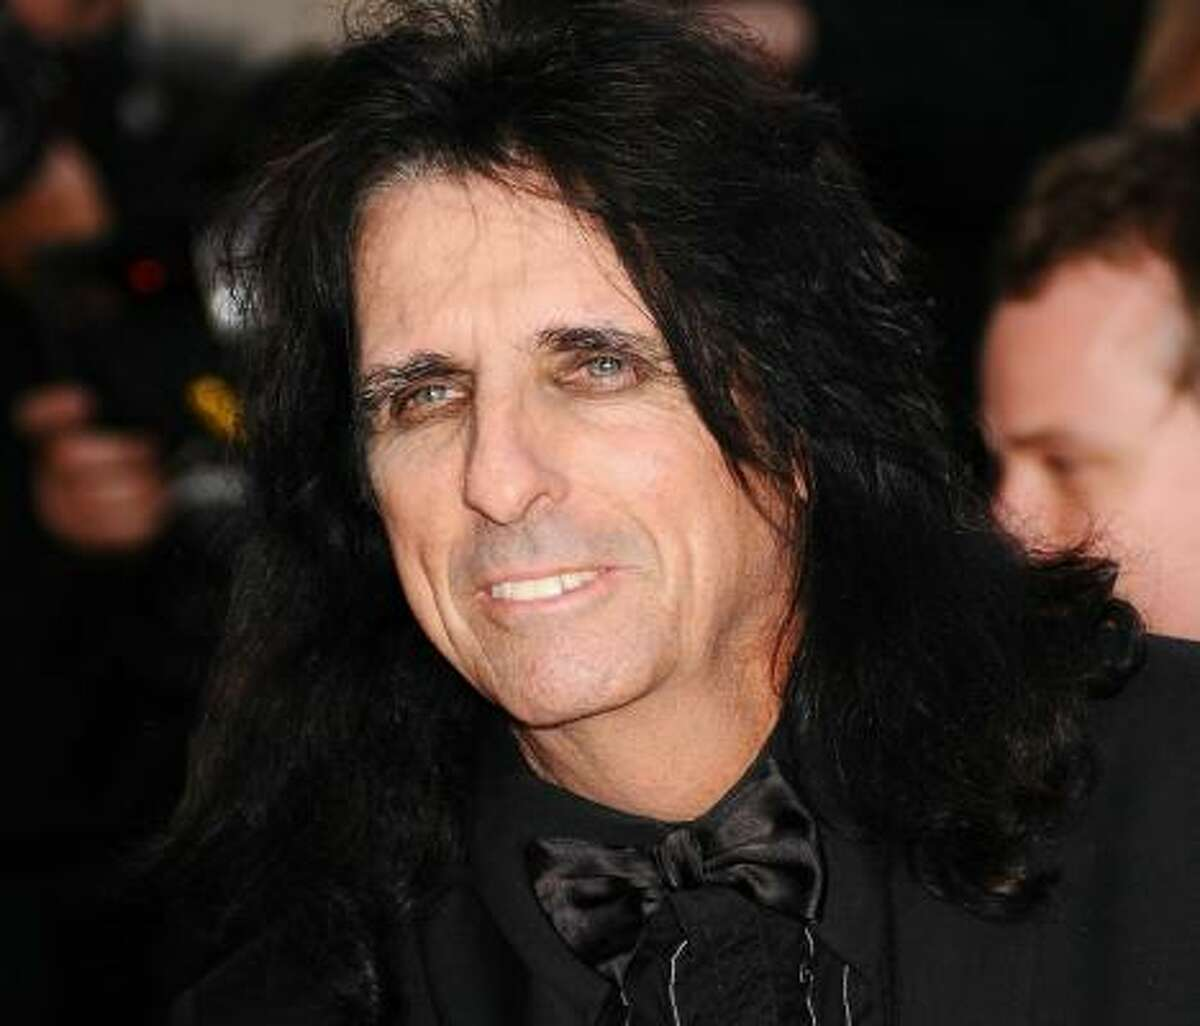 Alice Cooper has been wearing makeup for decades.